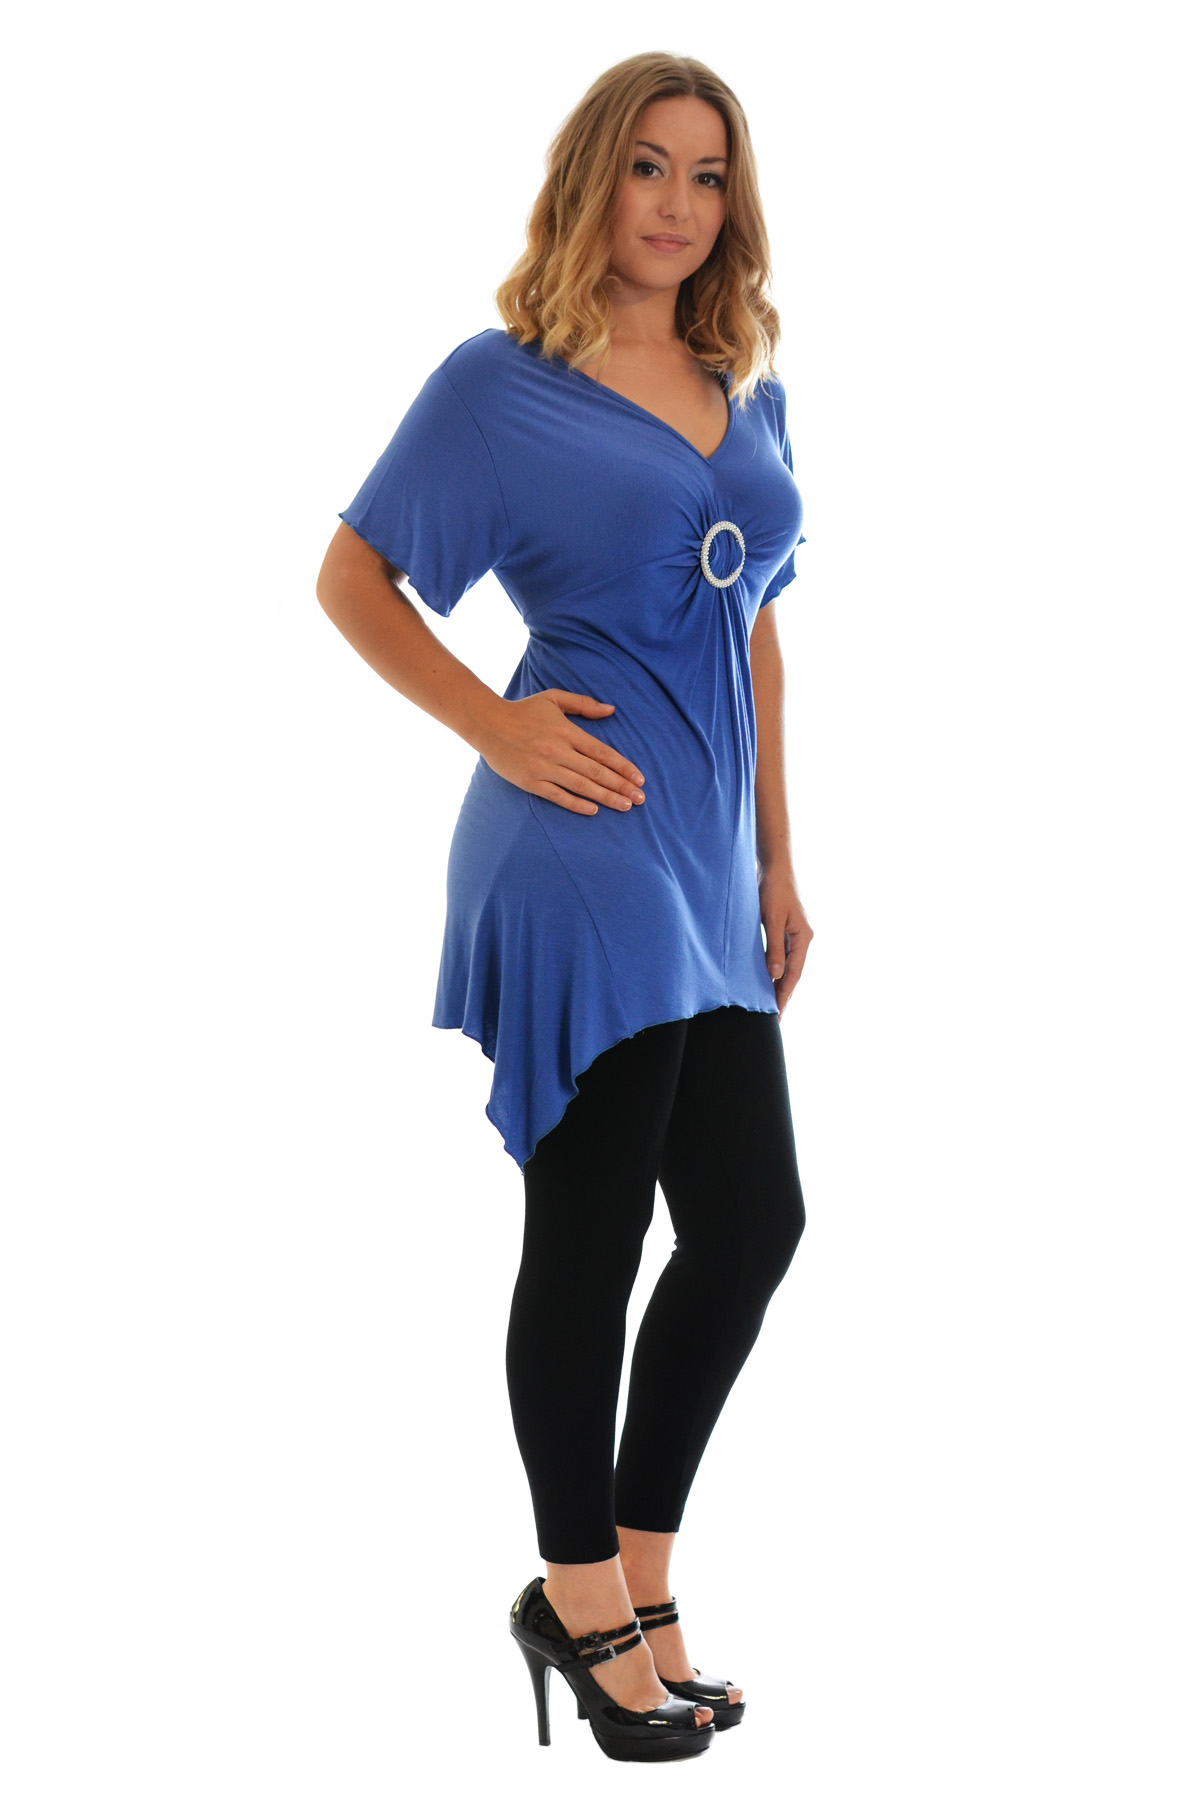 New-Womens-Plus-Size-Top-Ladies-T-Shirt-Buckle-Stud-A-Line-Asymmetric-Nouvelle thumbnail 72